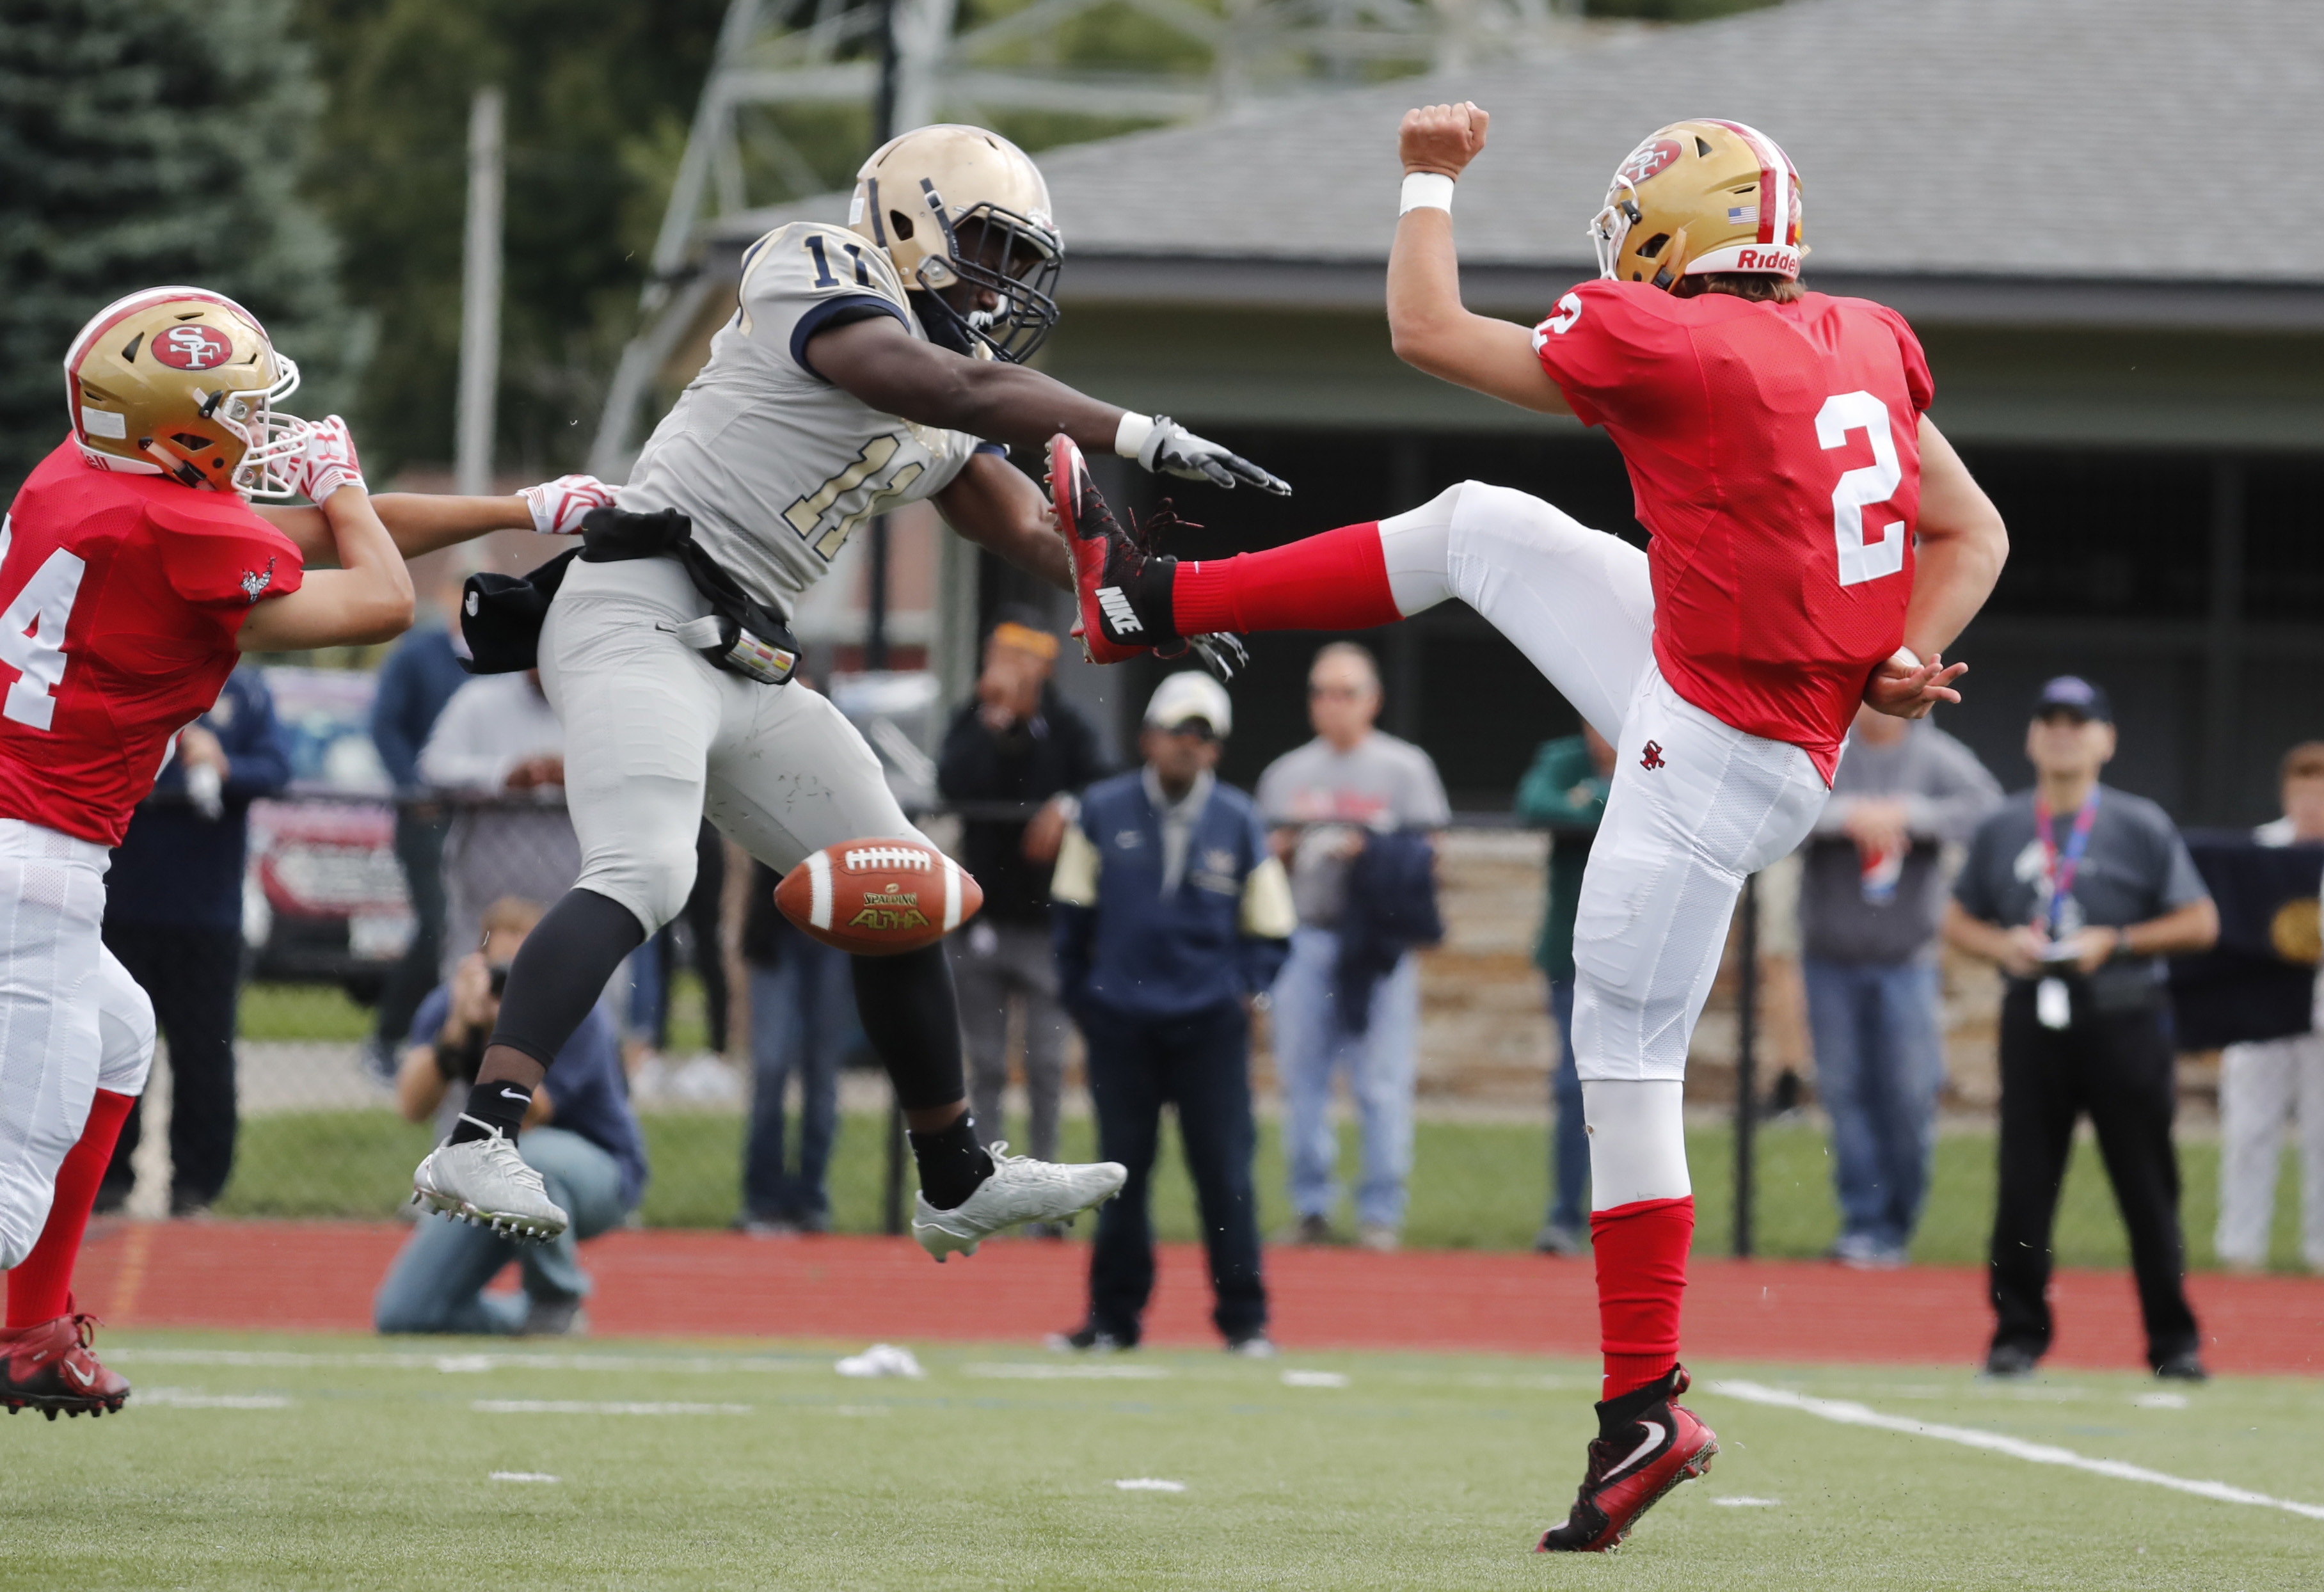 RaeQwon Greer of Canisius blocks a Jerry Hickson punt to set up the first touchdown of the Crusaders' 55-13 victory.